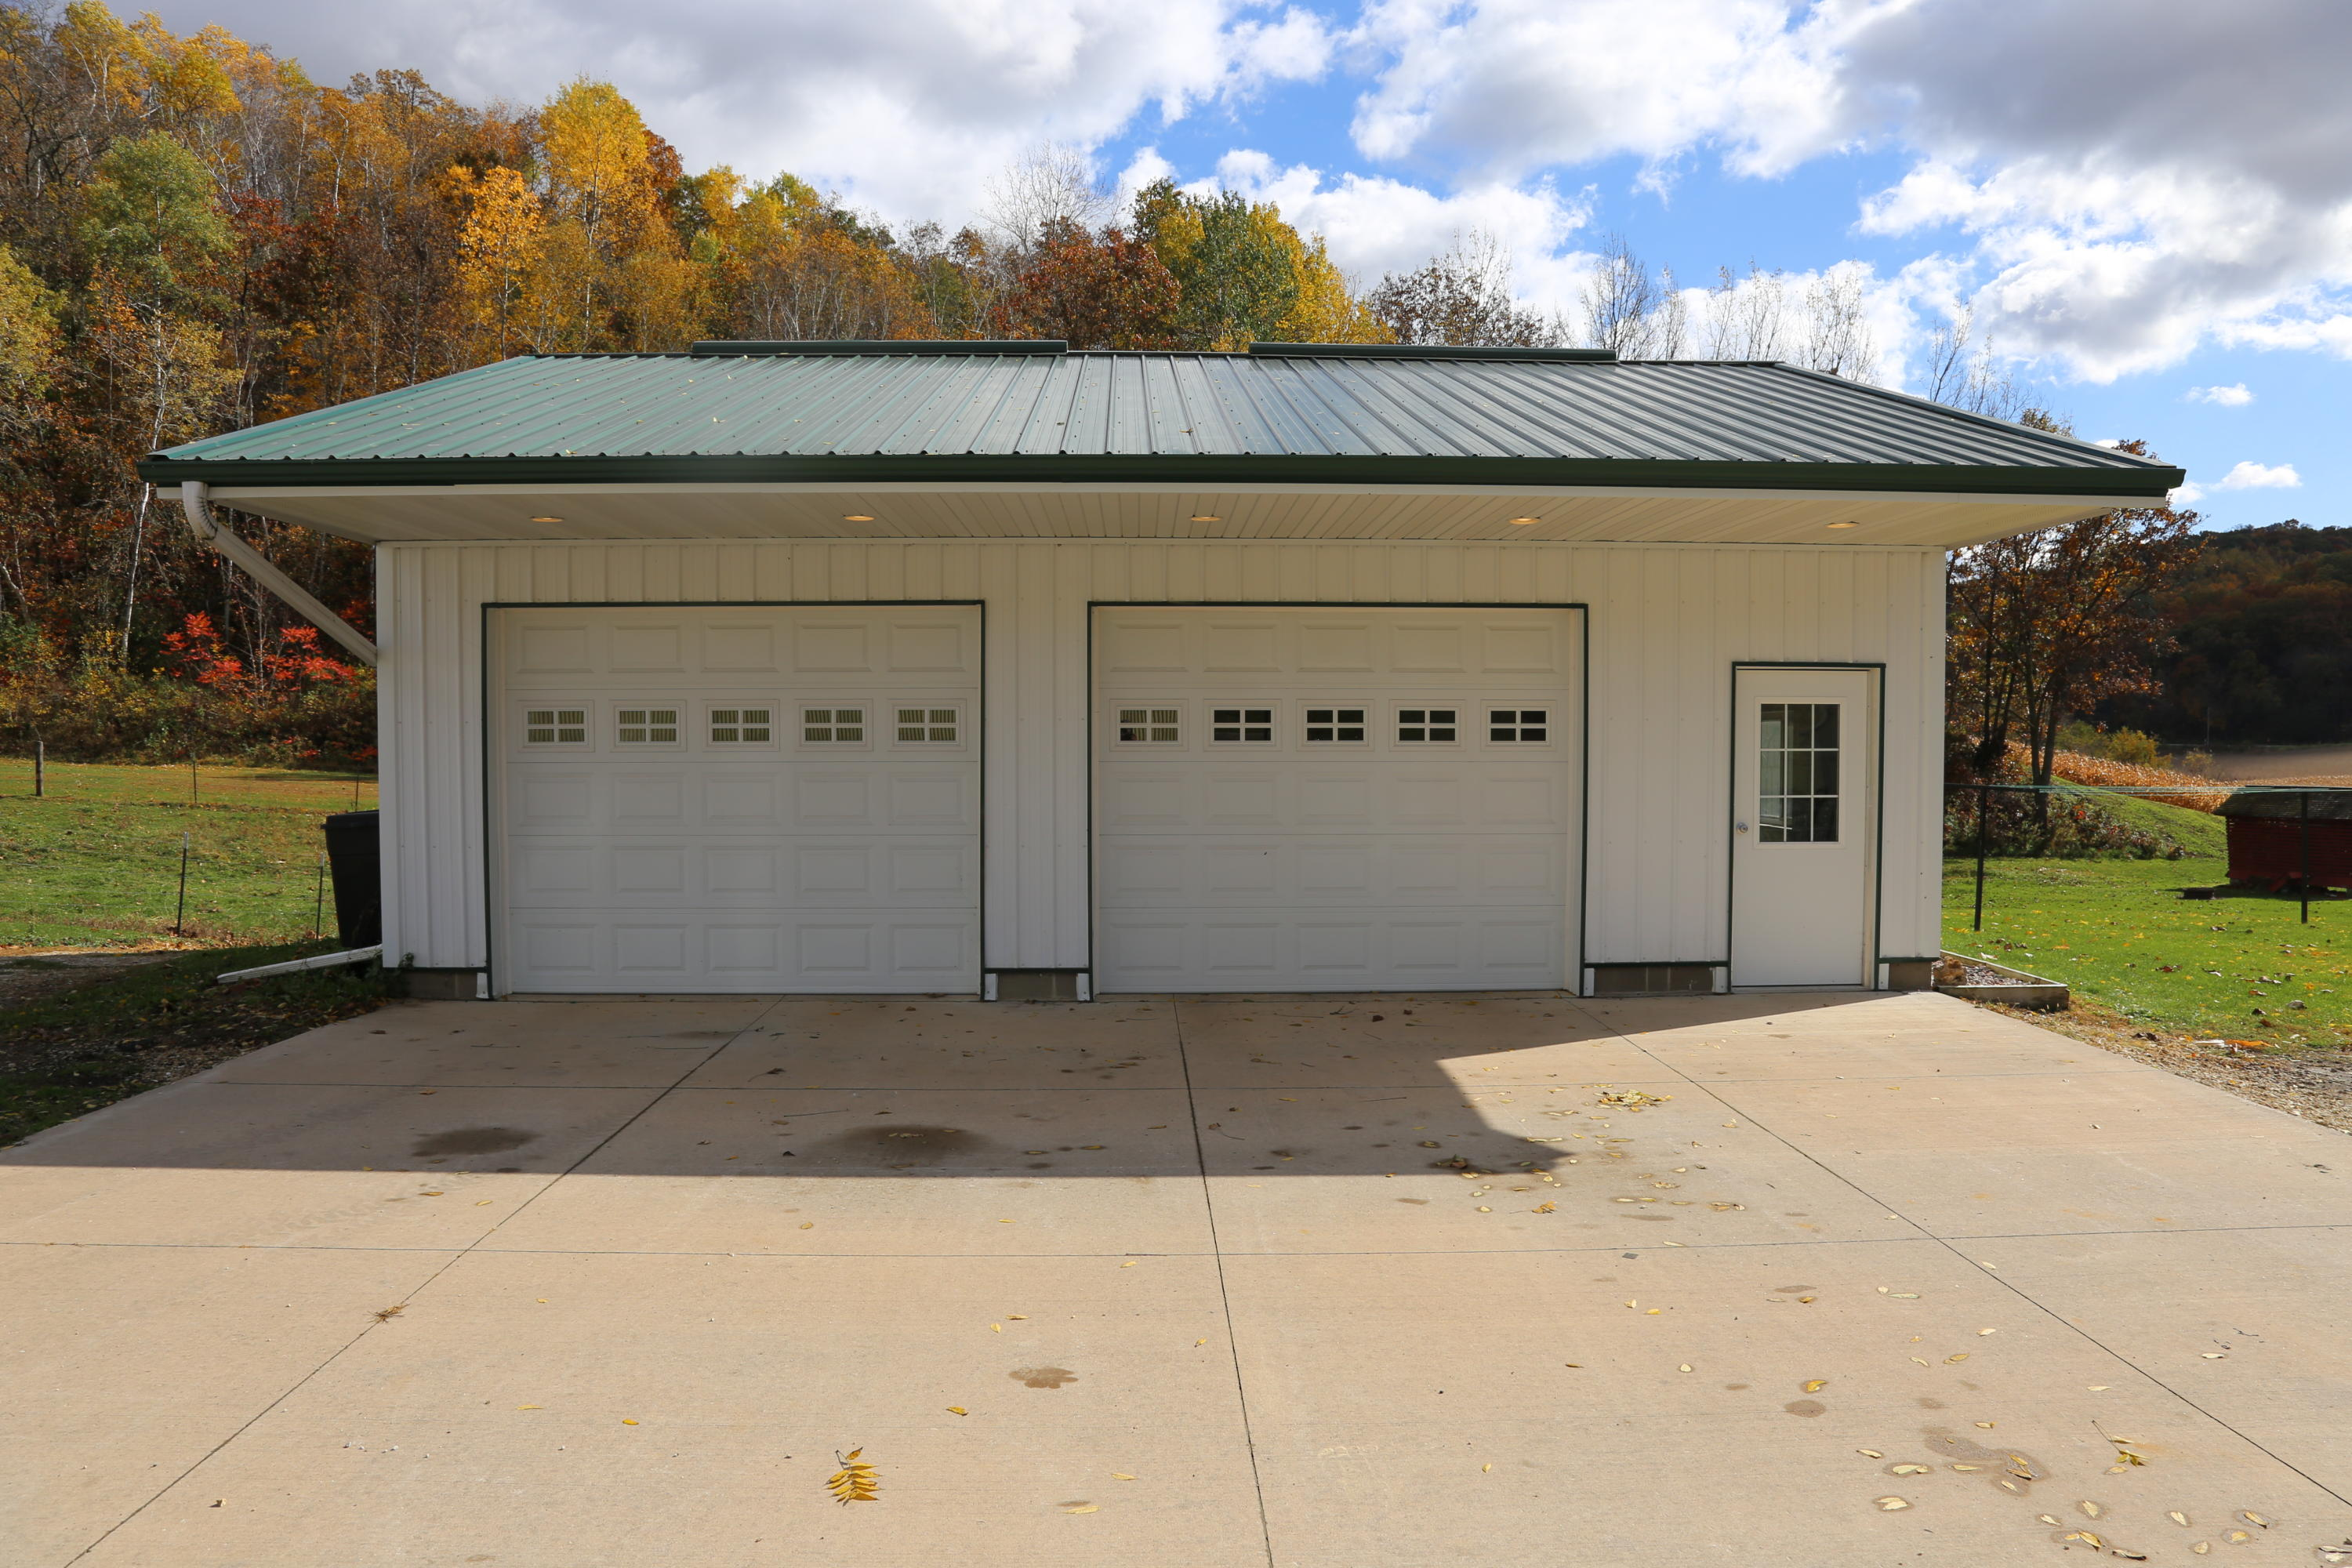 20642 Kale Rd #3, Leon, Wisconsin 54656, 4 Bedrooms Bedrooms, ,1 BathroomBathrooms,Single-family,For Sale,Kale Rd #3,1714433